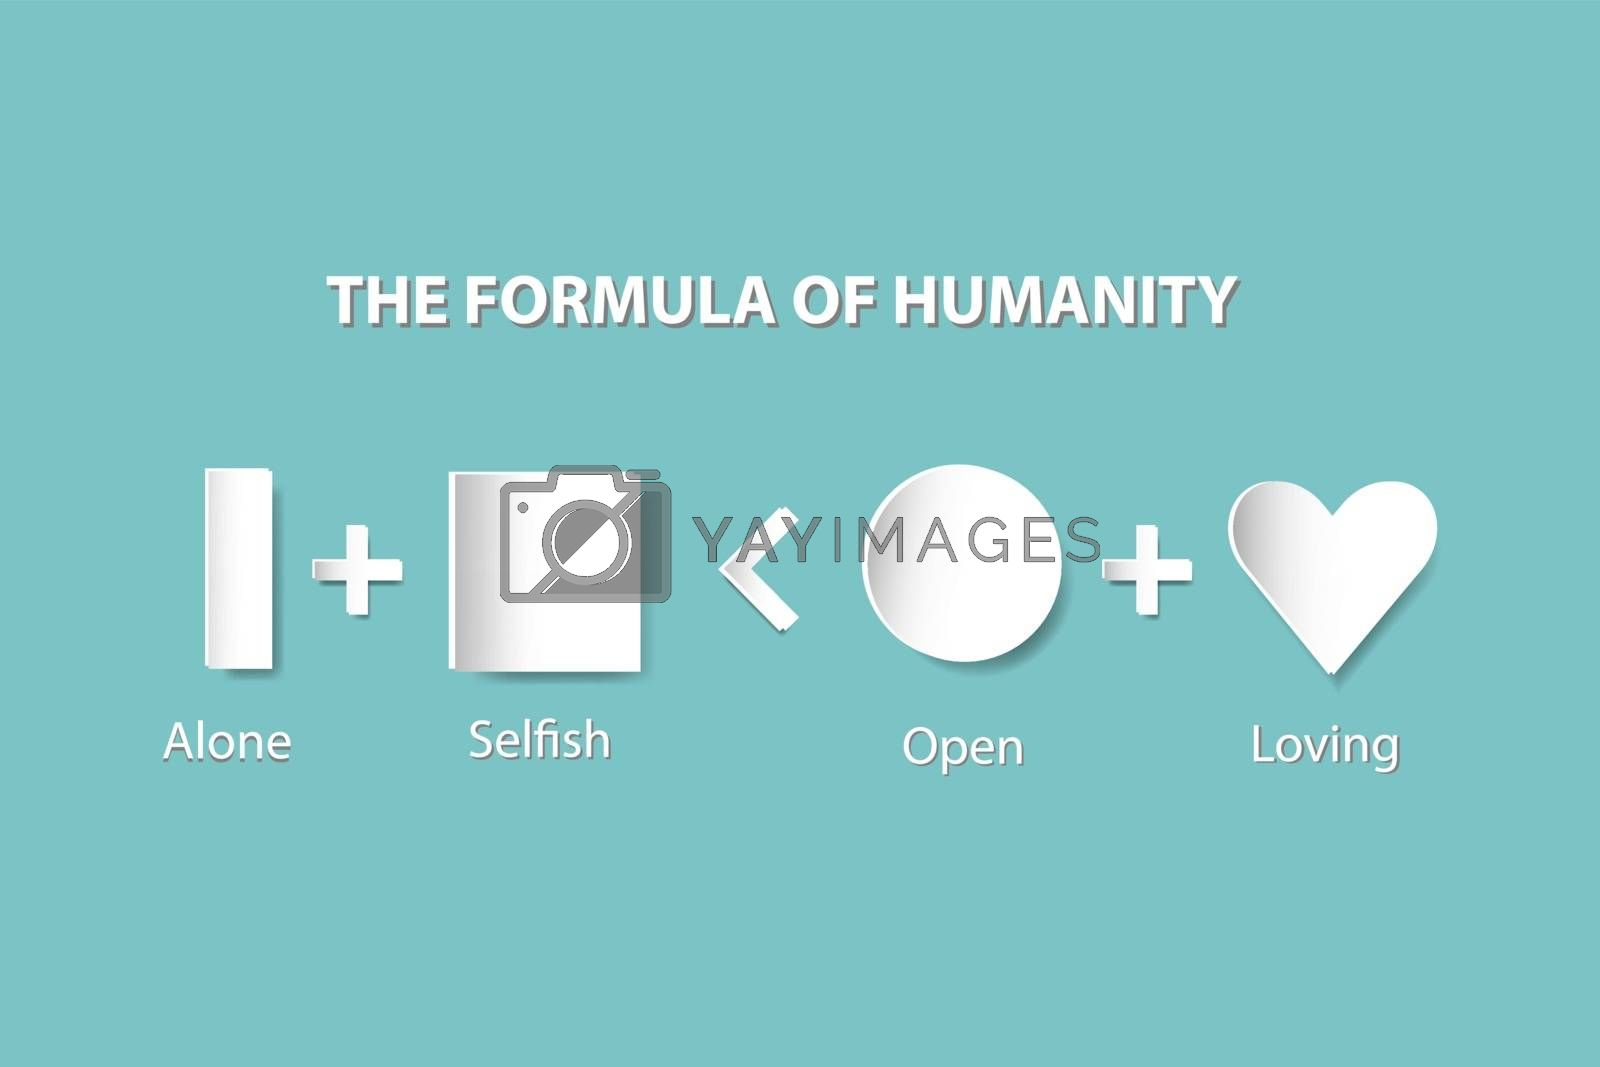 The formula of humanity by Frank11